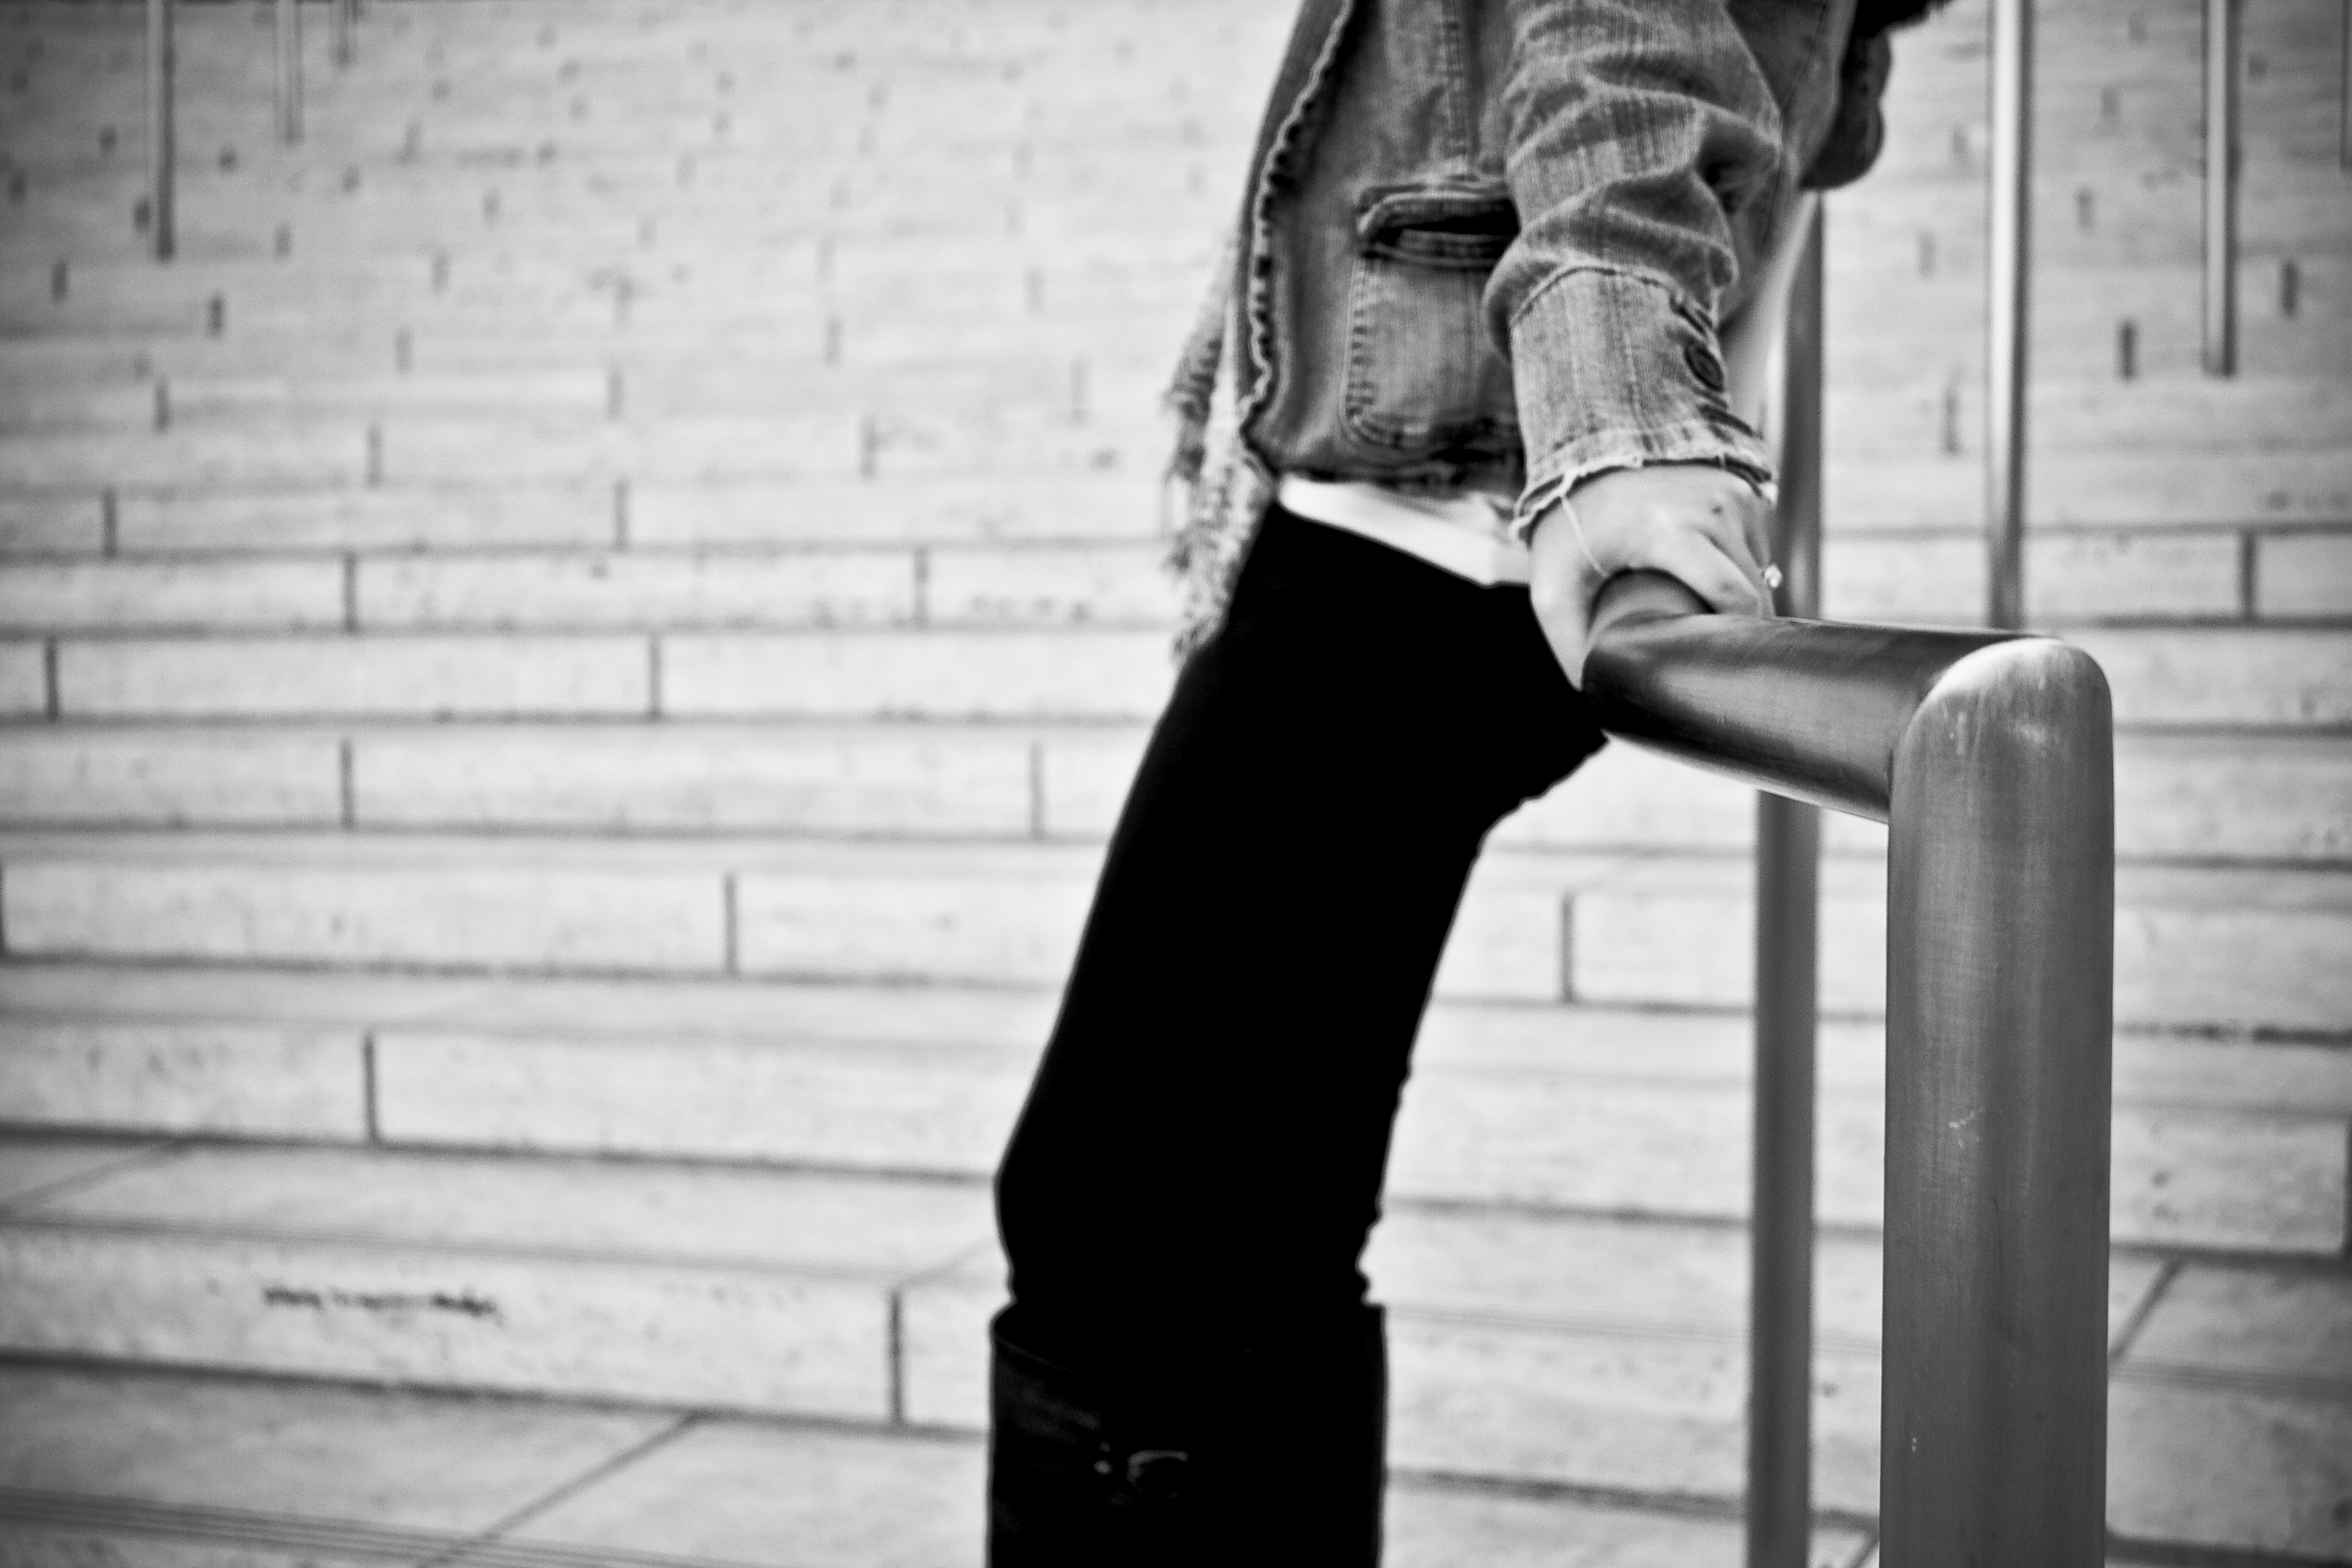 grayscale photography of person holding handrail